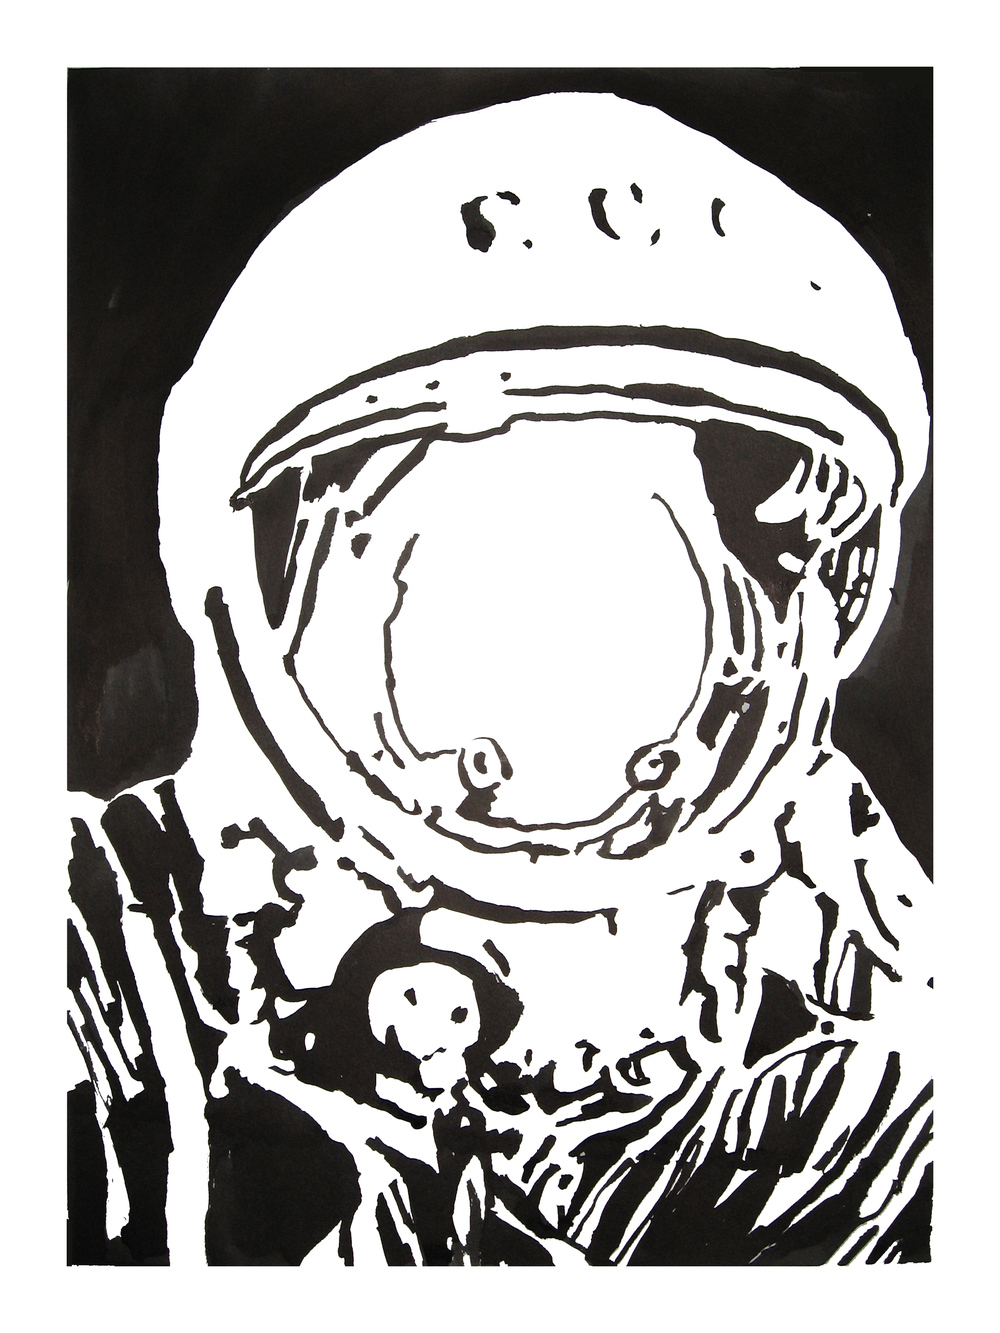 untitled. (spaceman blot 04)